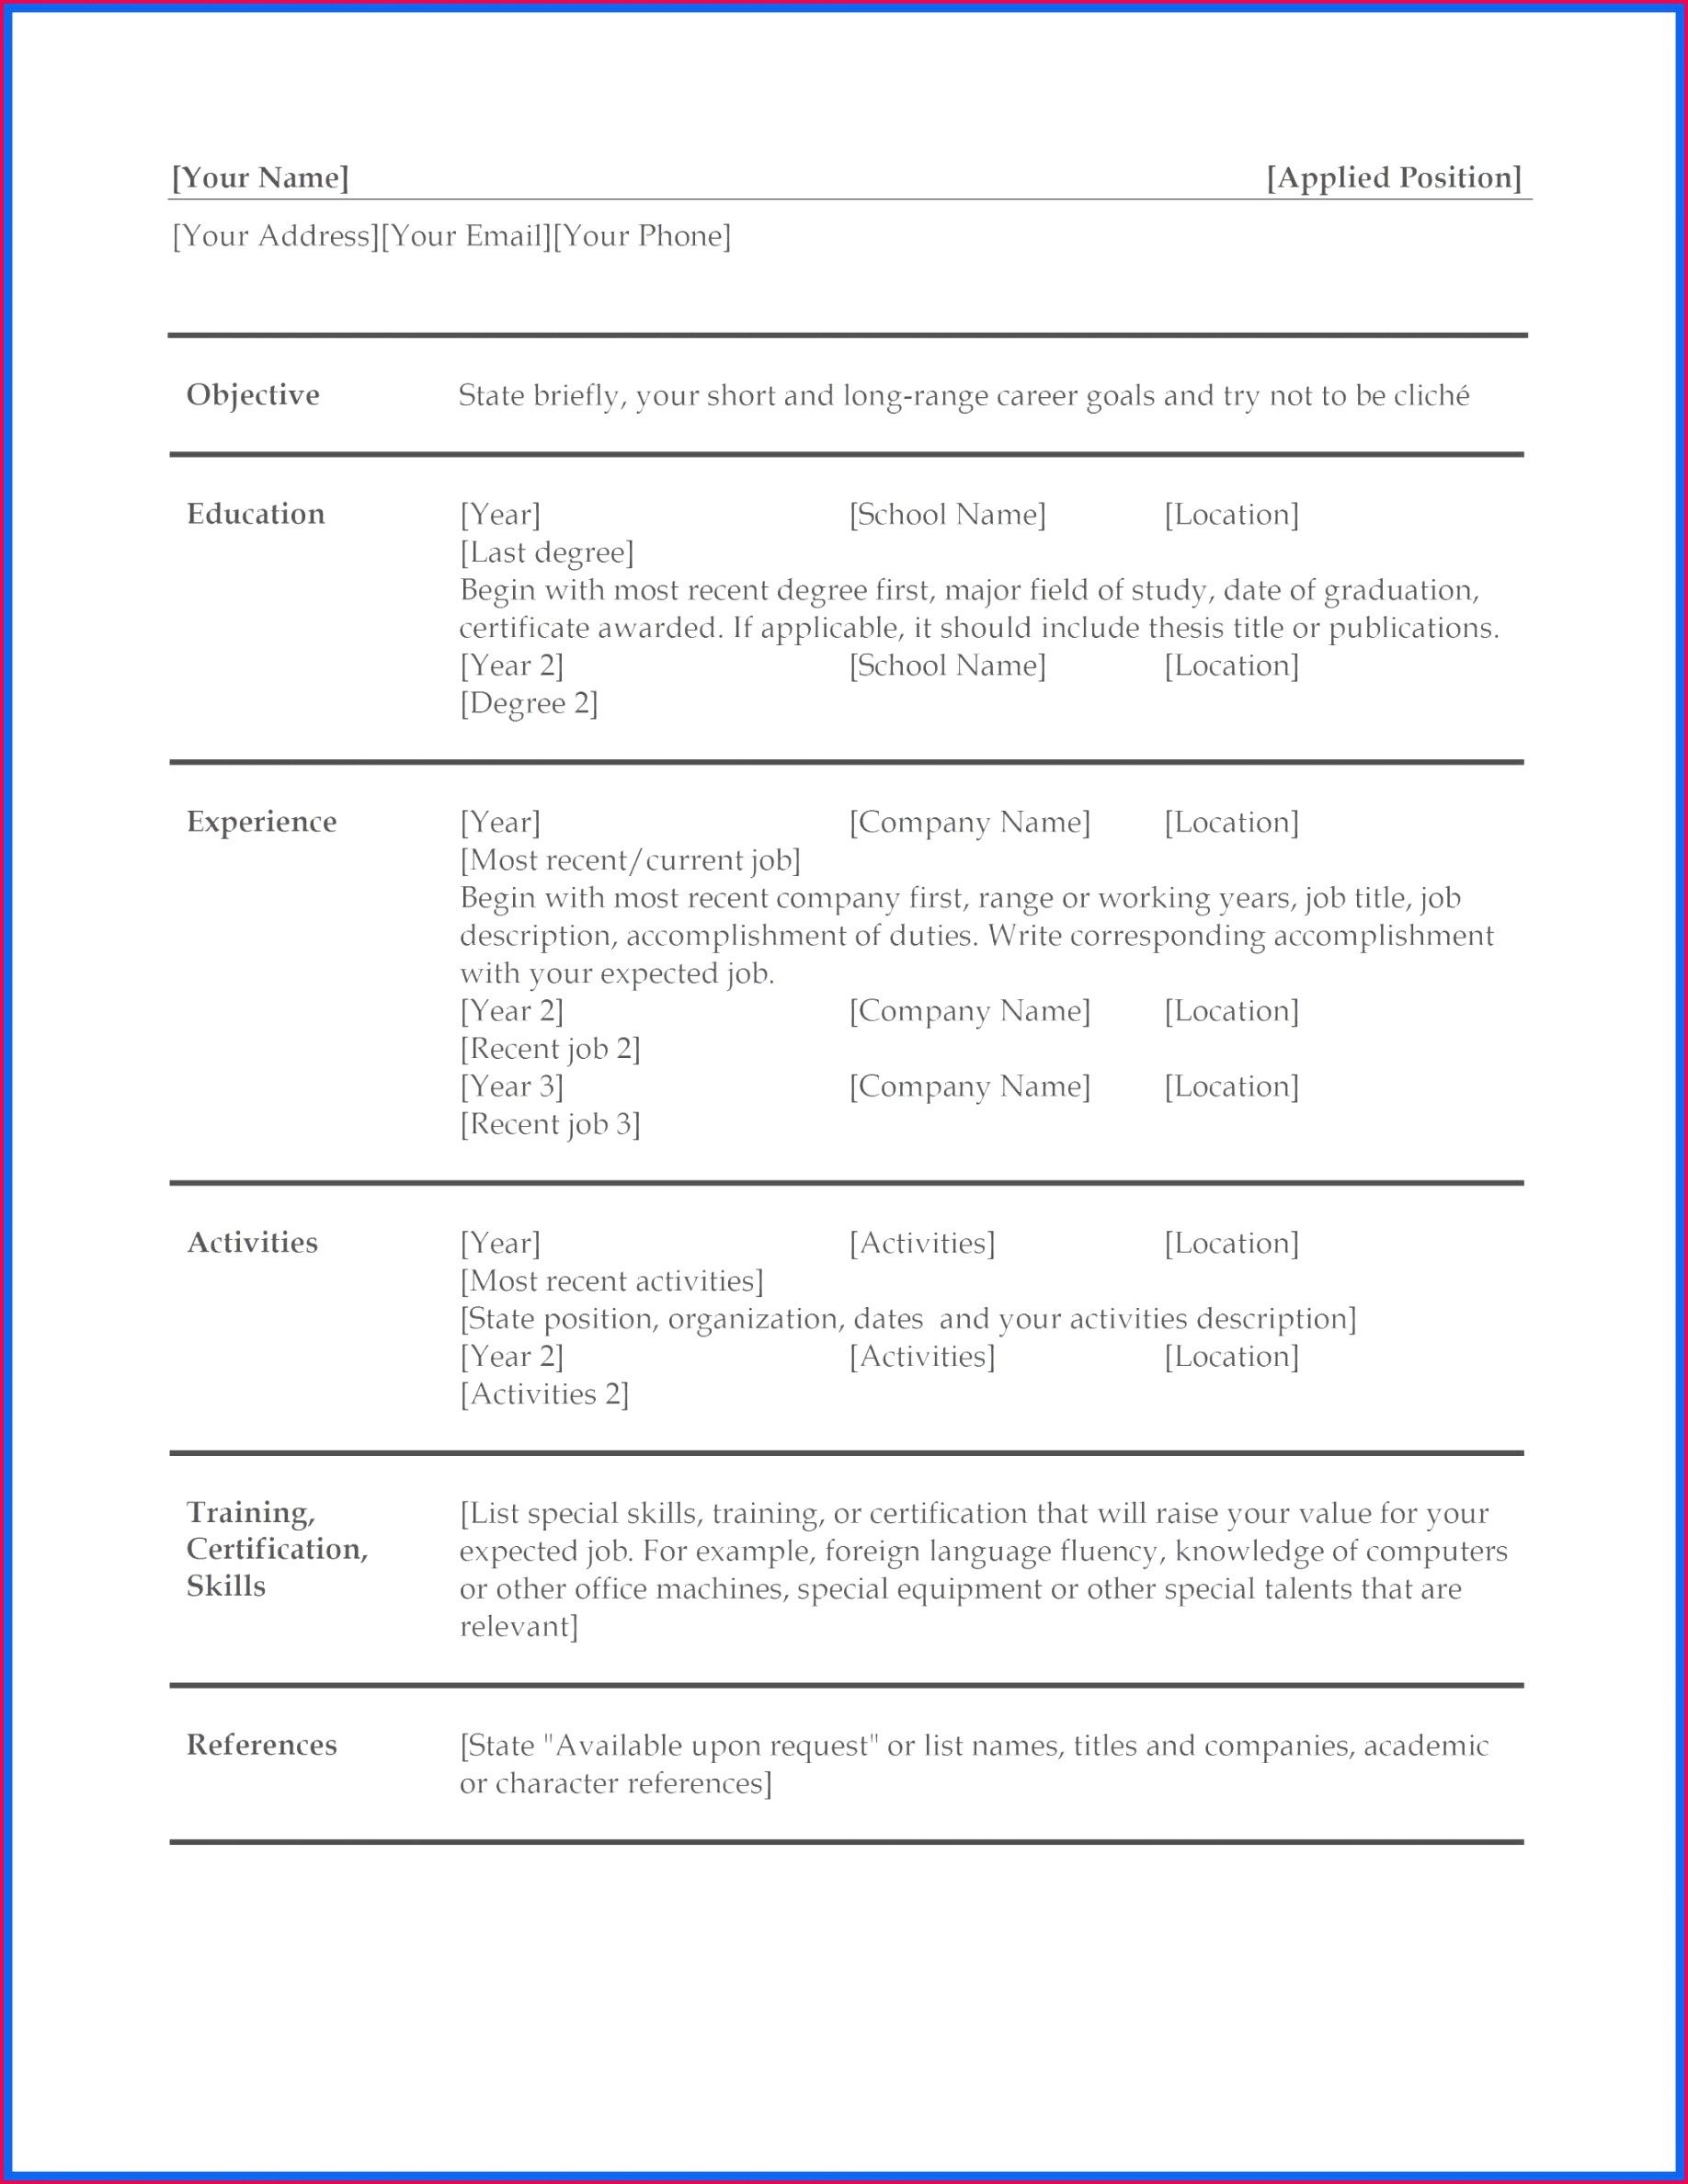 adobe resume templates free simple job resume examples best fresh resume 0d resume for idees of adobe resume templates